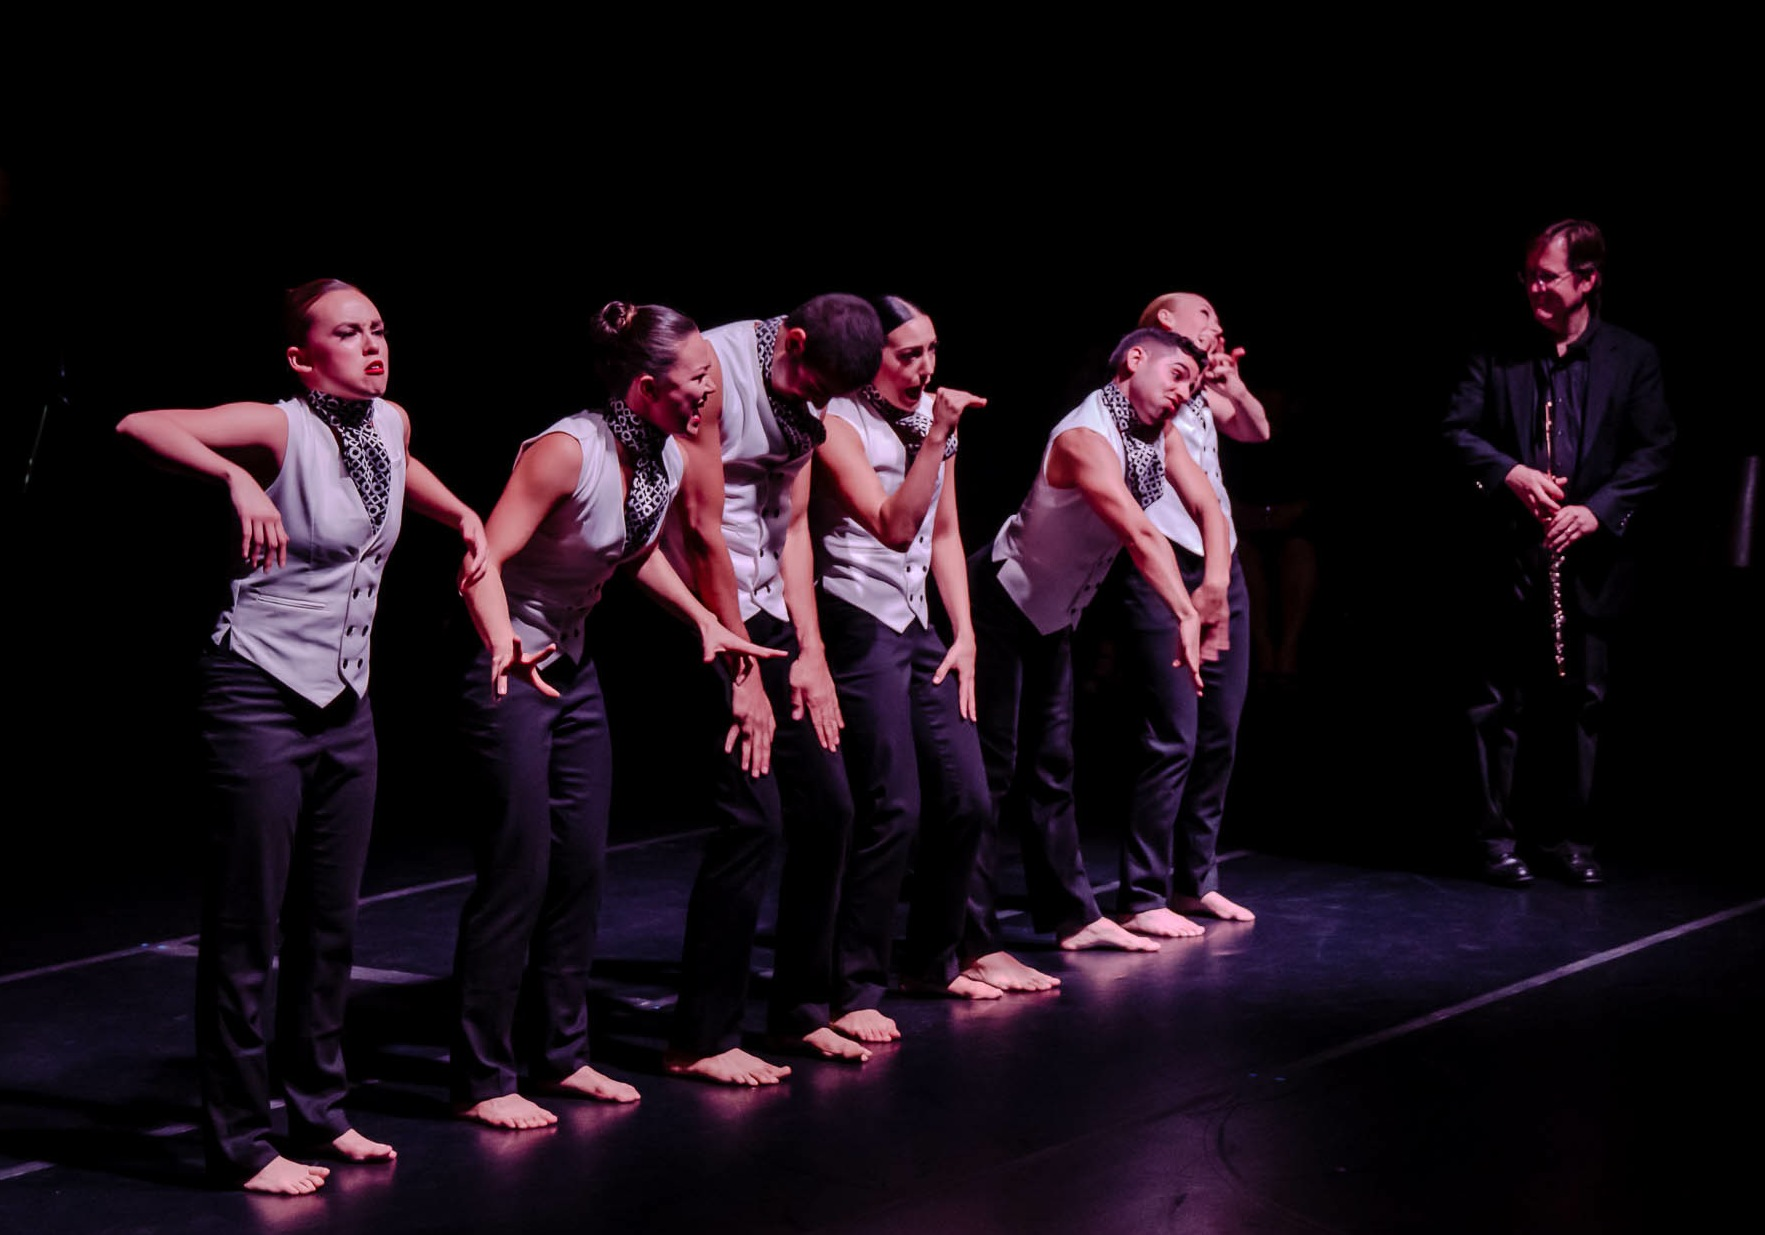 CRDT Dance Ensemble performs Here Comes Treble, with composer Dan Hesler. Choreography by Taylor Mitchell, costumes by Jordan Ross. (Photo by Dan Hasburger)